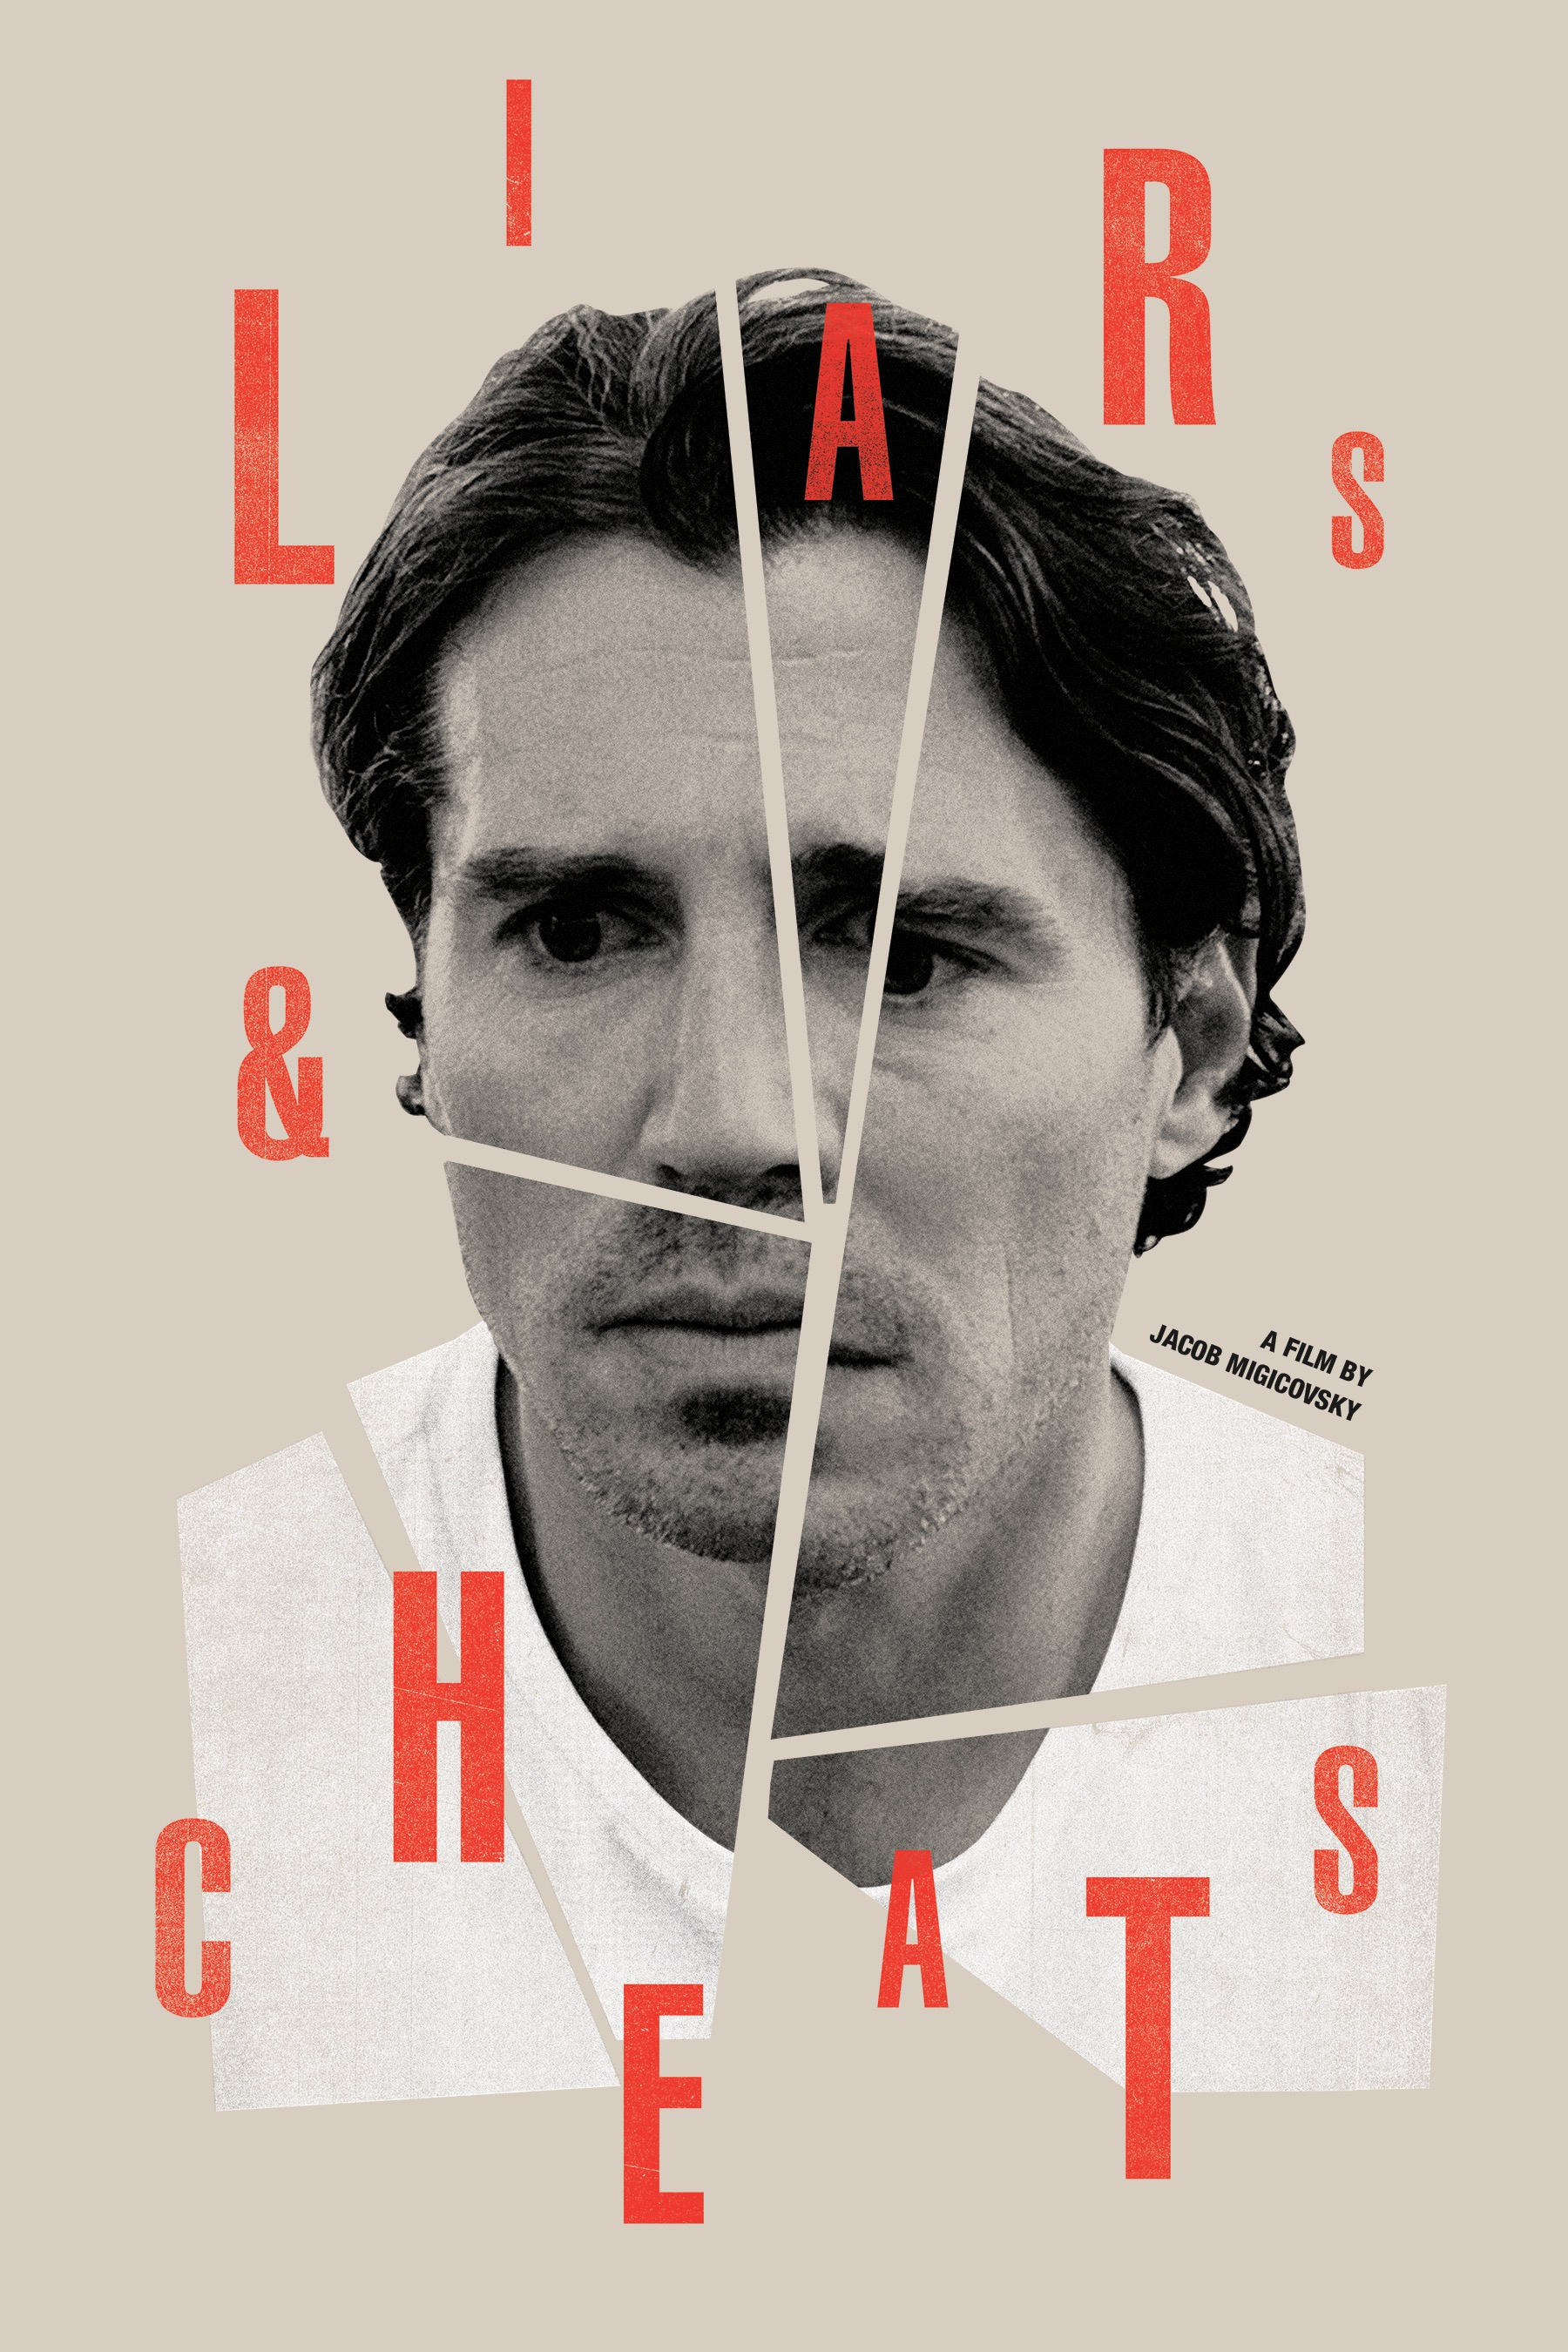 Liars & Cheats Poster